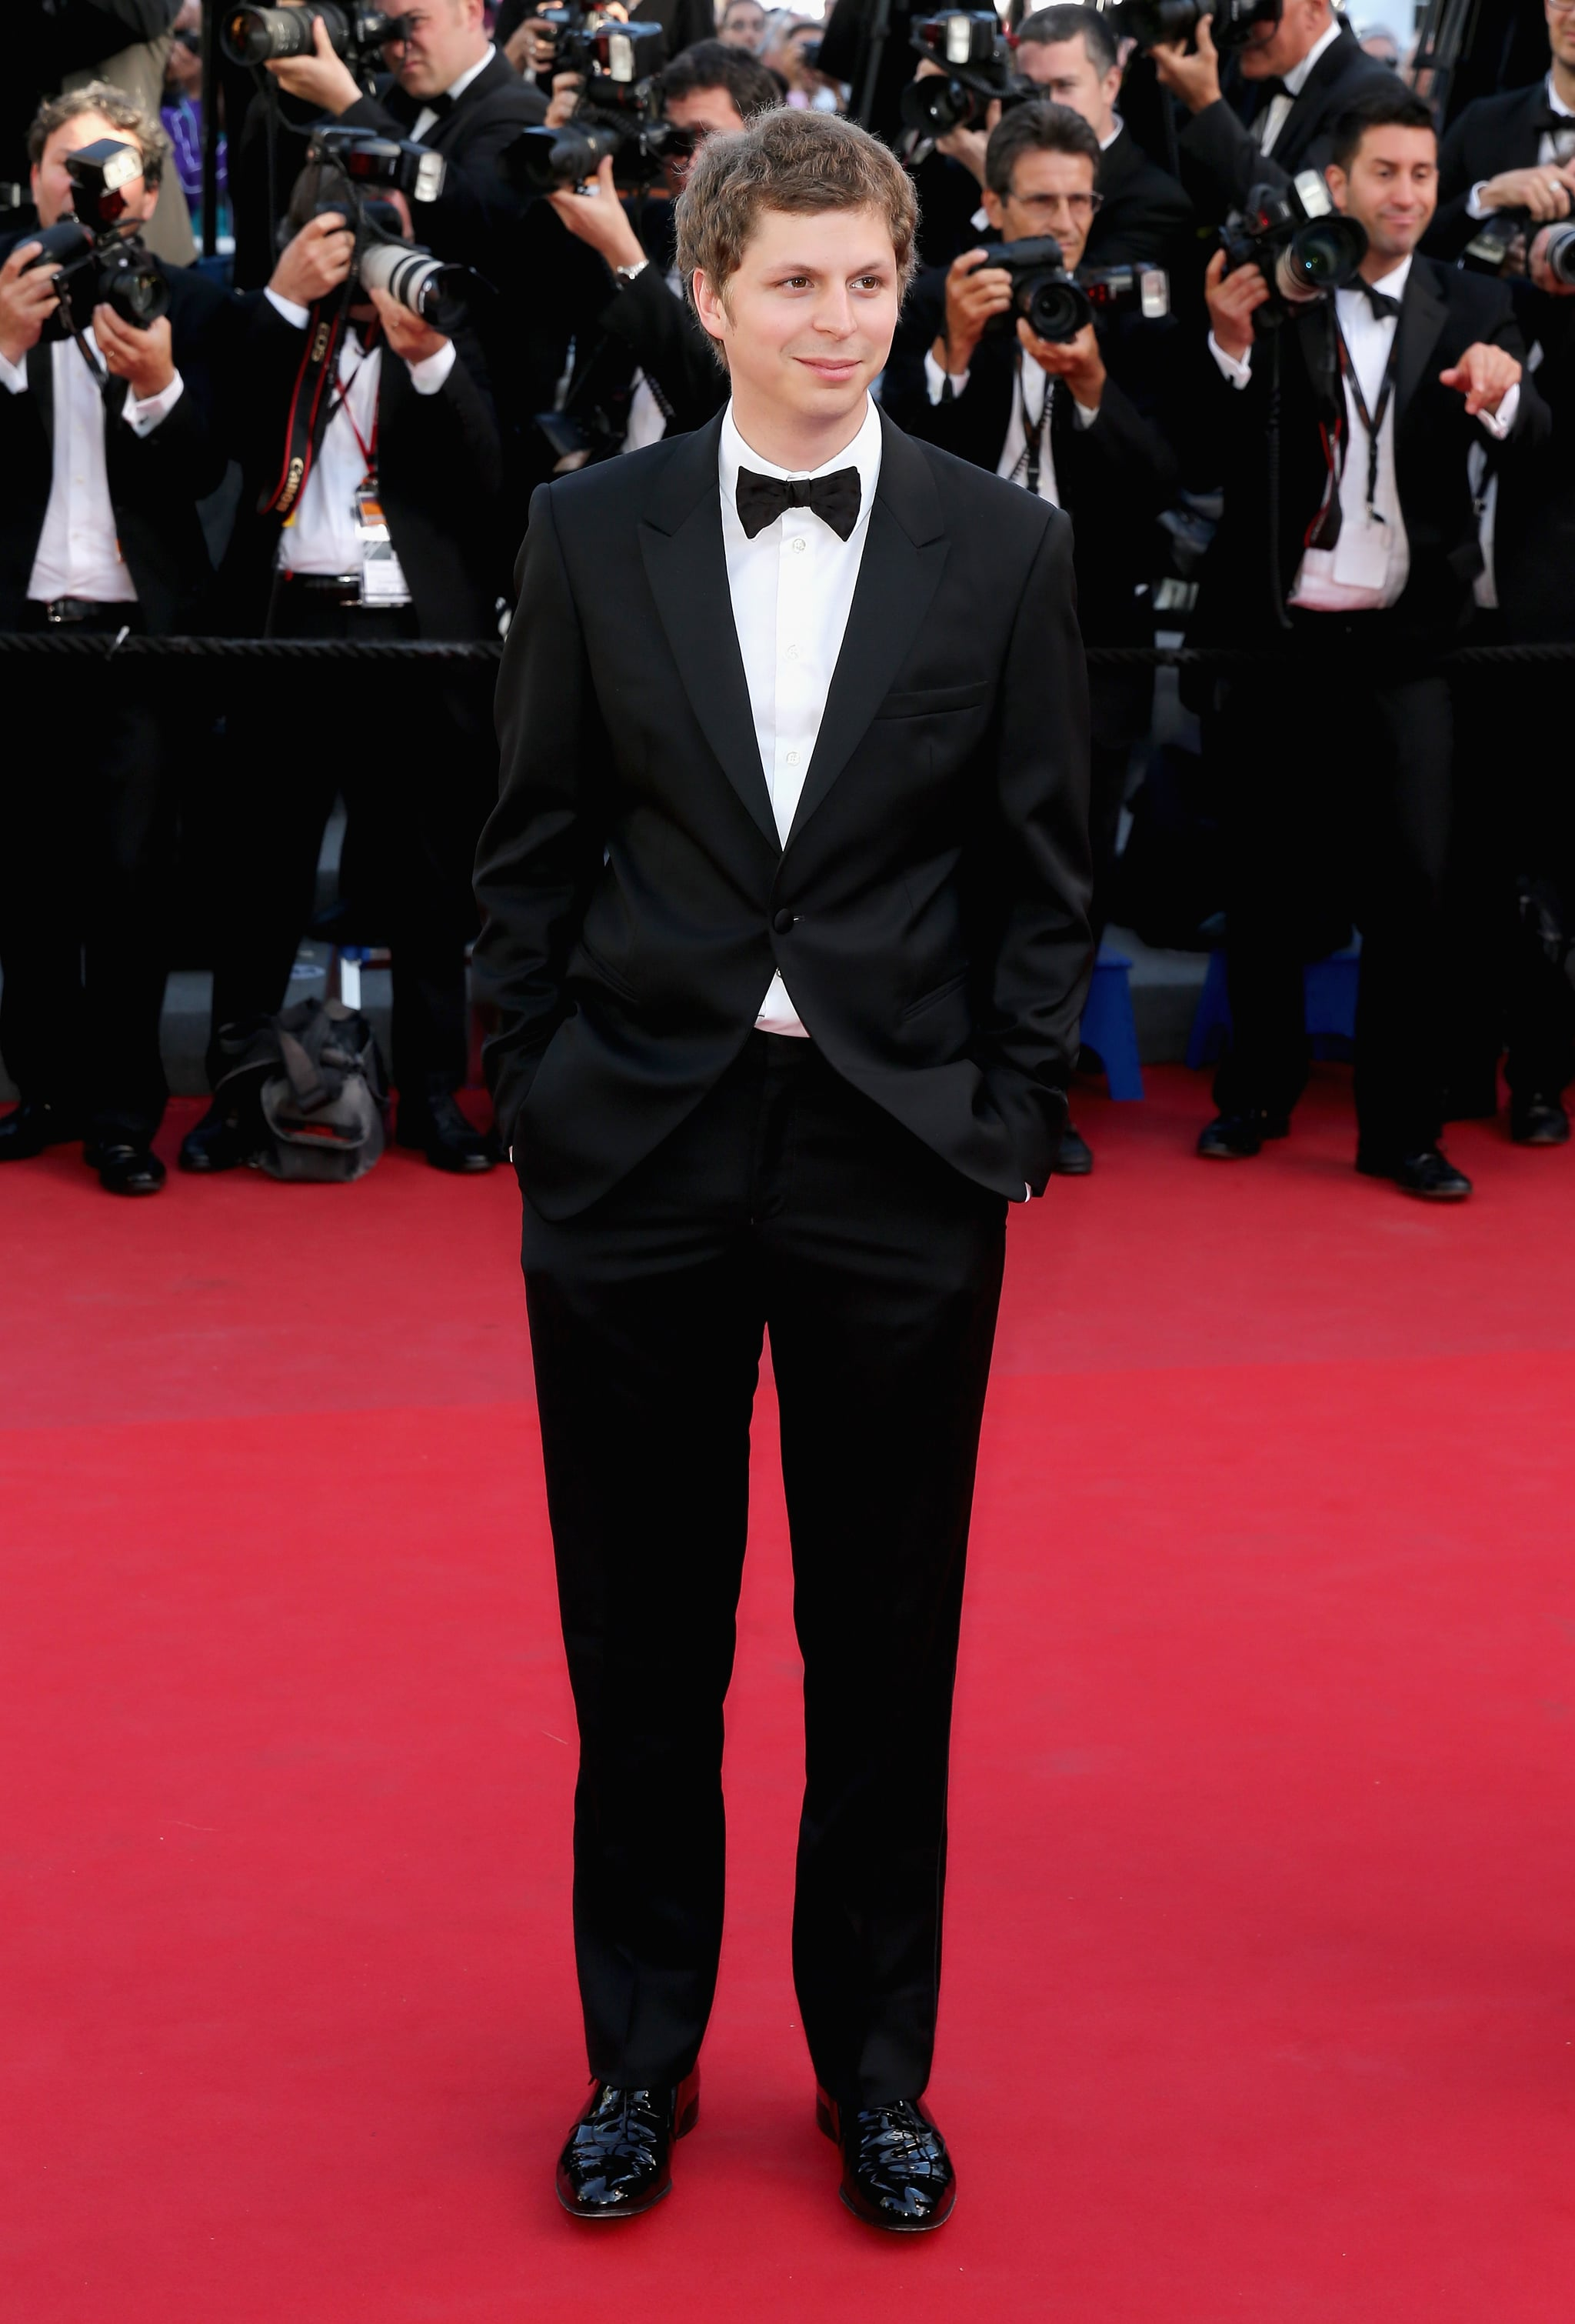 Michael Cera suited up for The Immigrant premiere on Friday in Cannes.